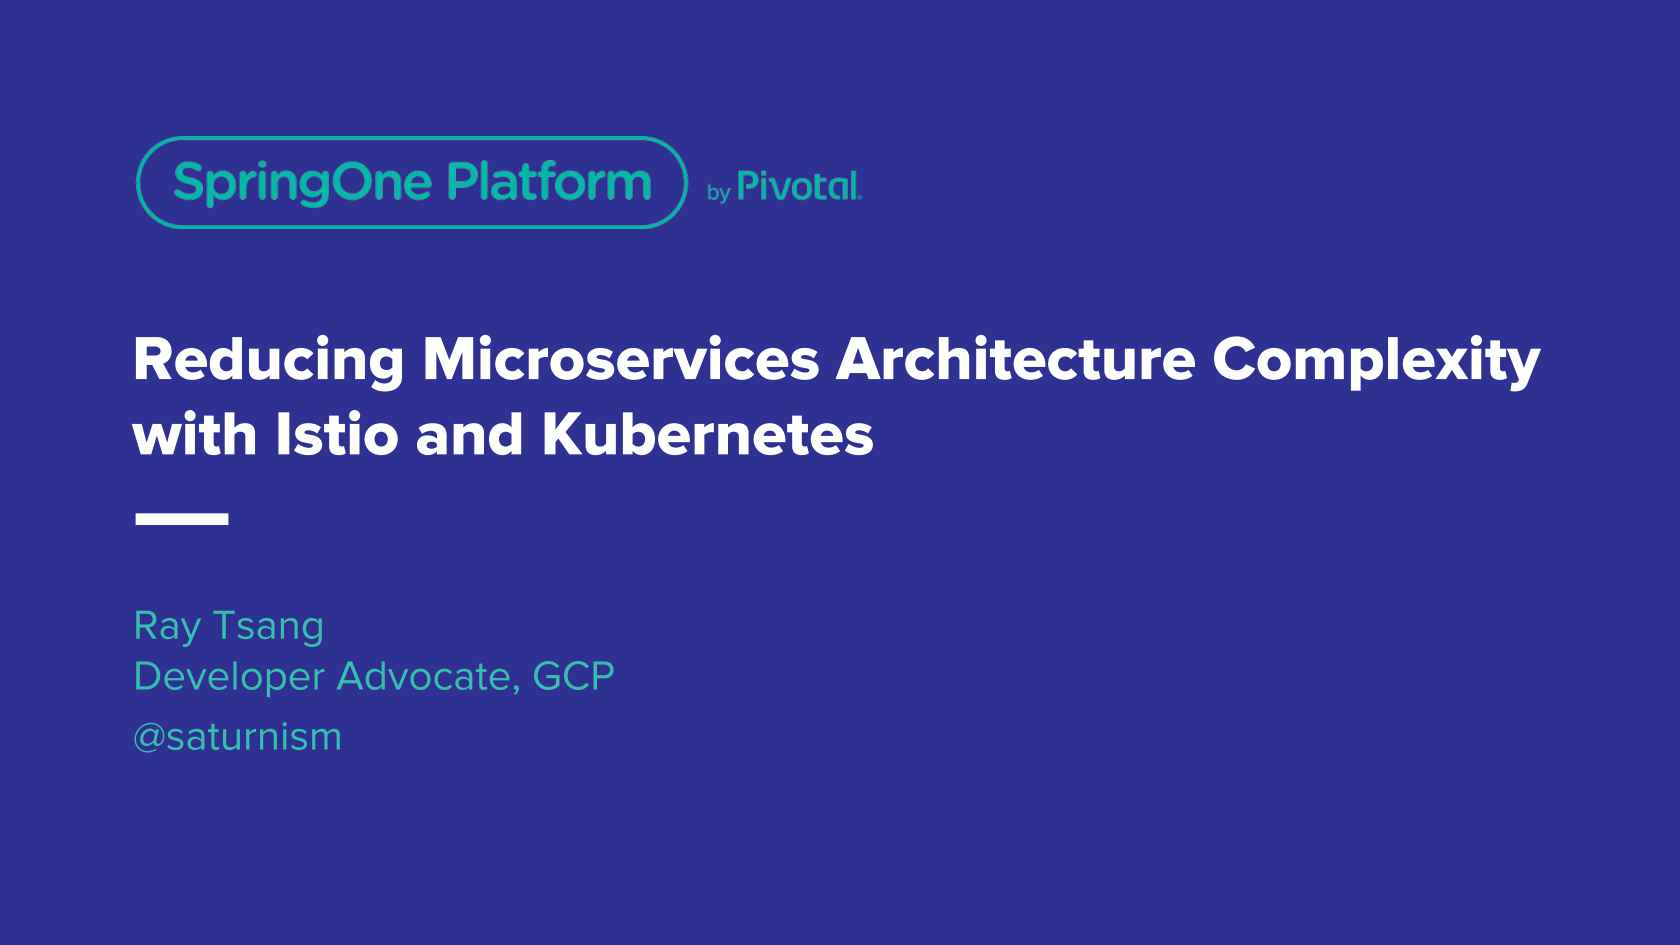 Reducing Microservices Architecture Complexity with Istio and